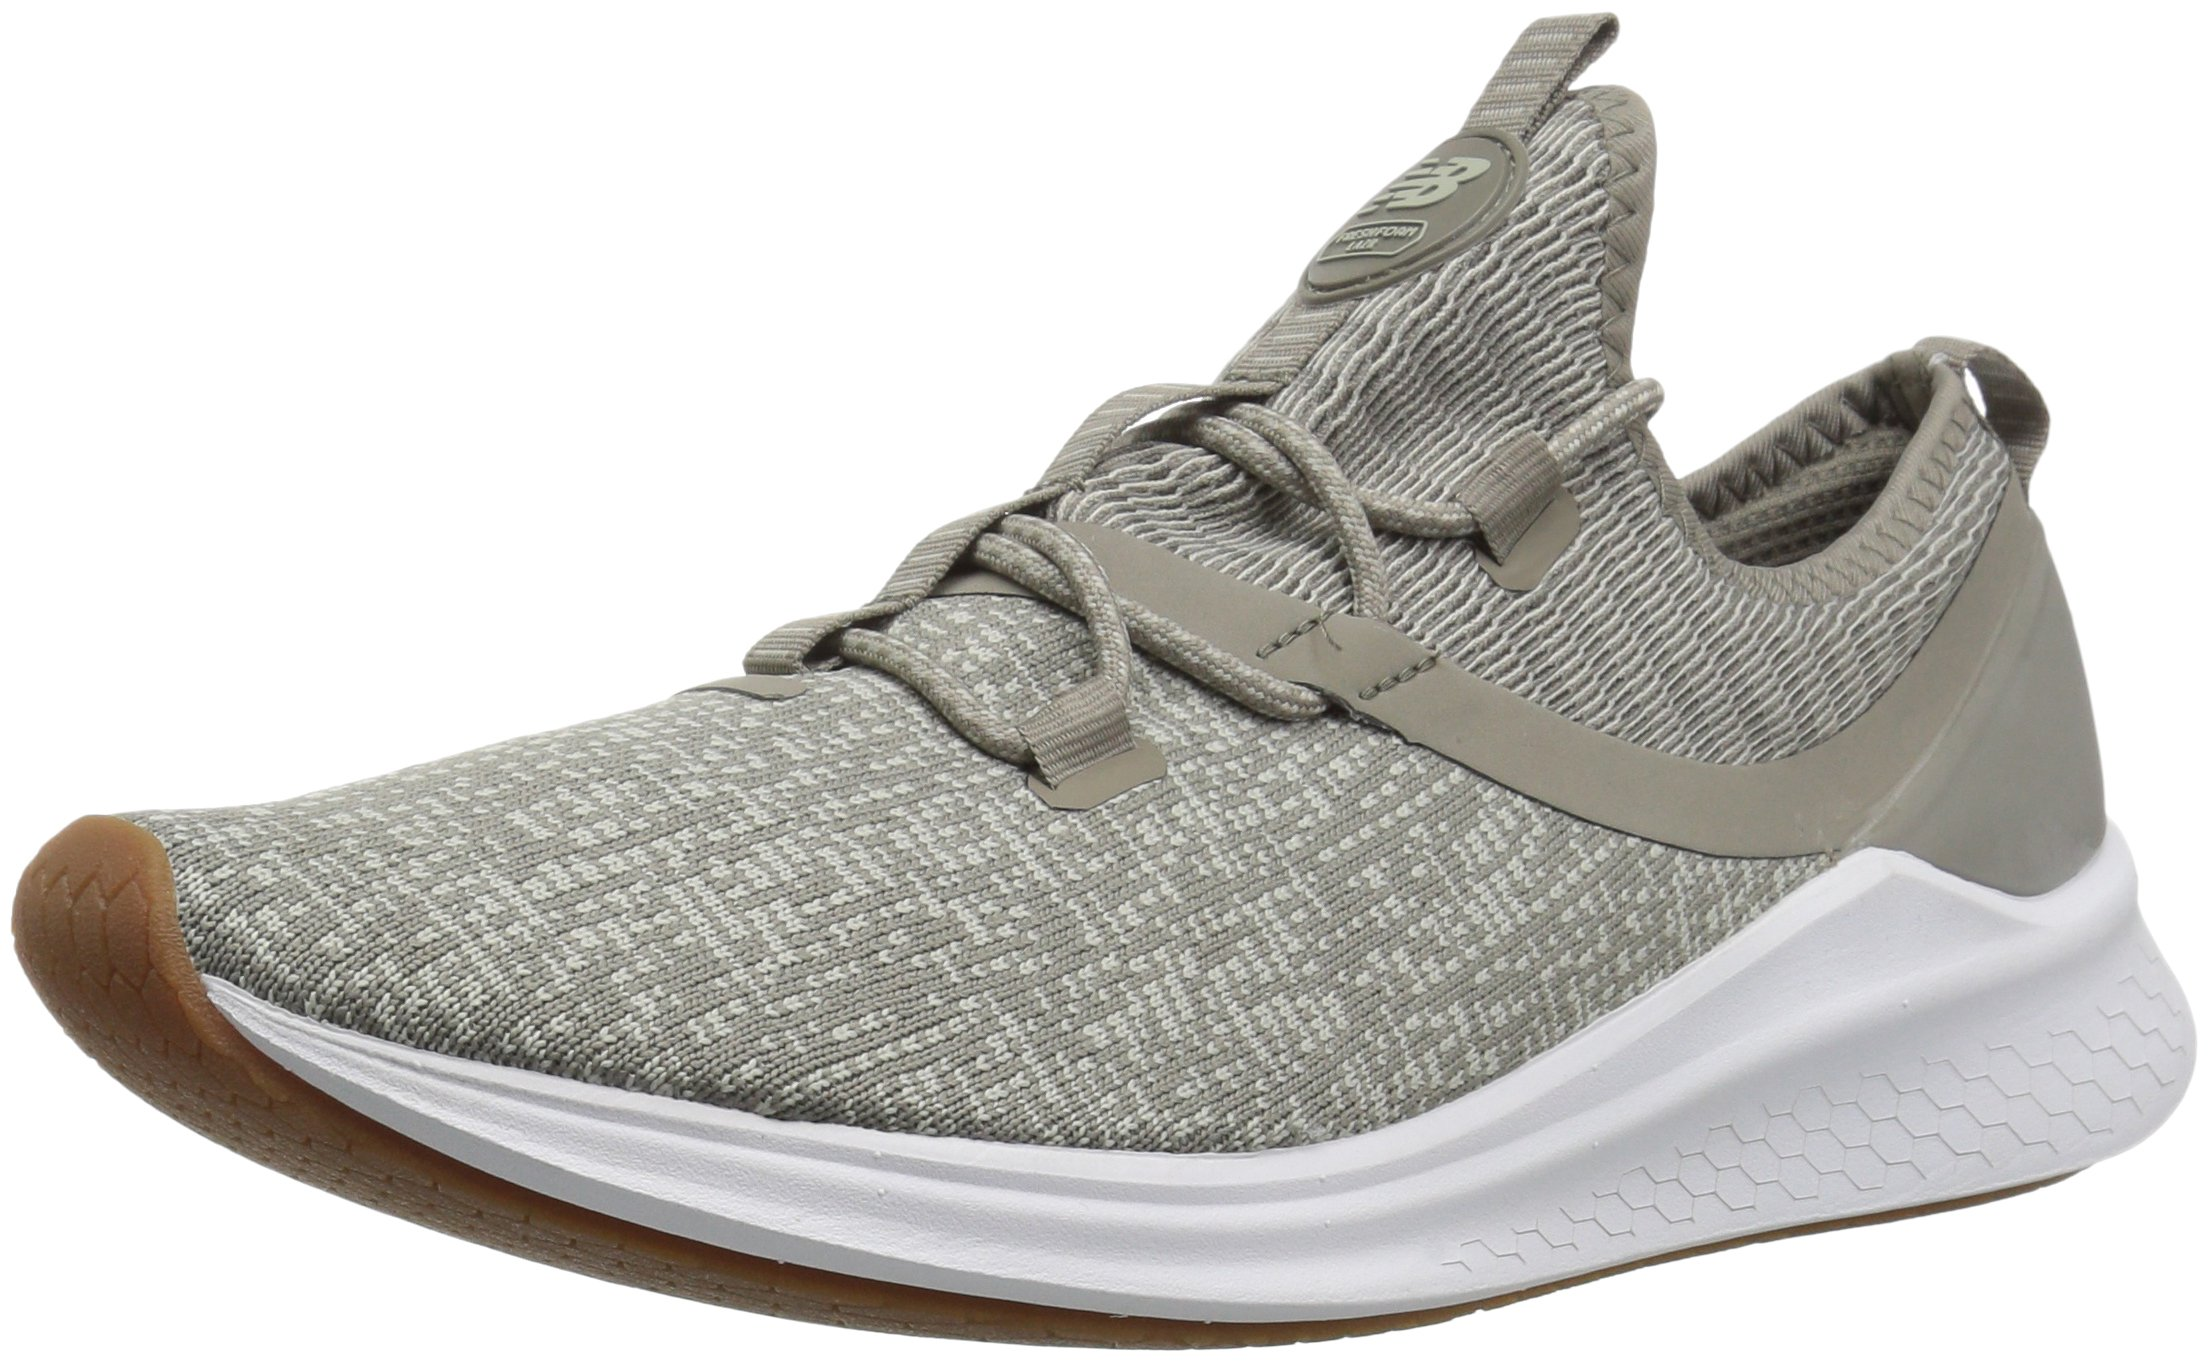 New Balance Men's Fresh Foam Lazr v1 Sport Running Shoe, Military Urban Grey/Stone Grey/White Munsell, 10 2E US by New Balance